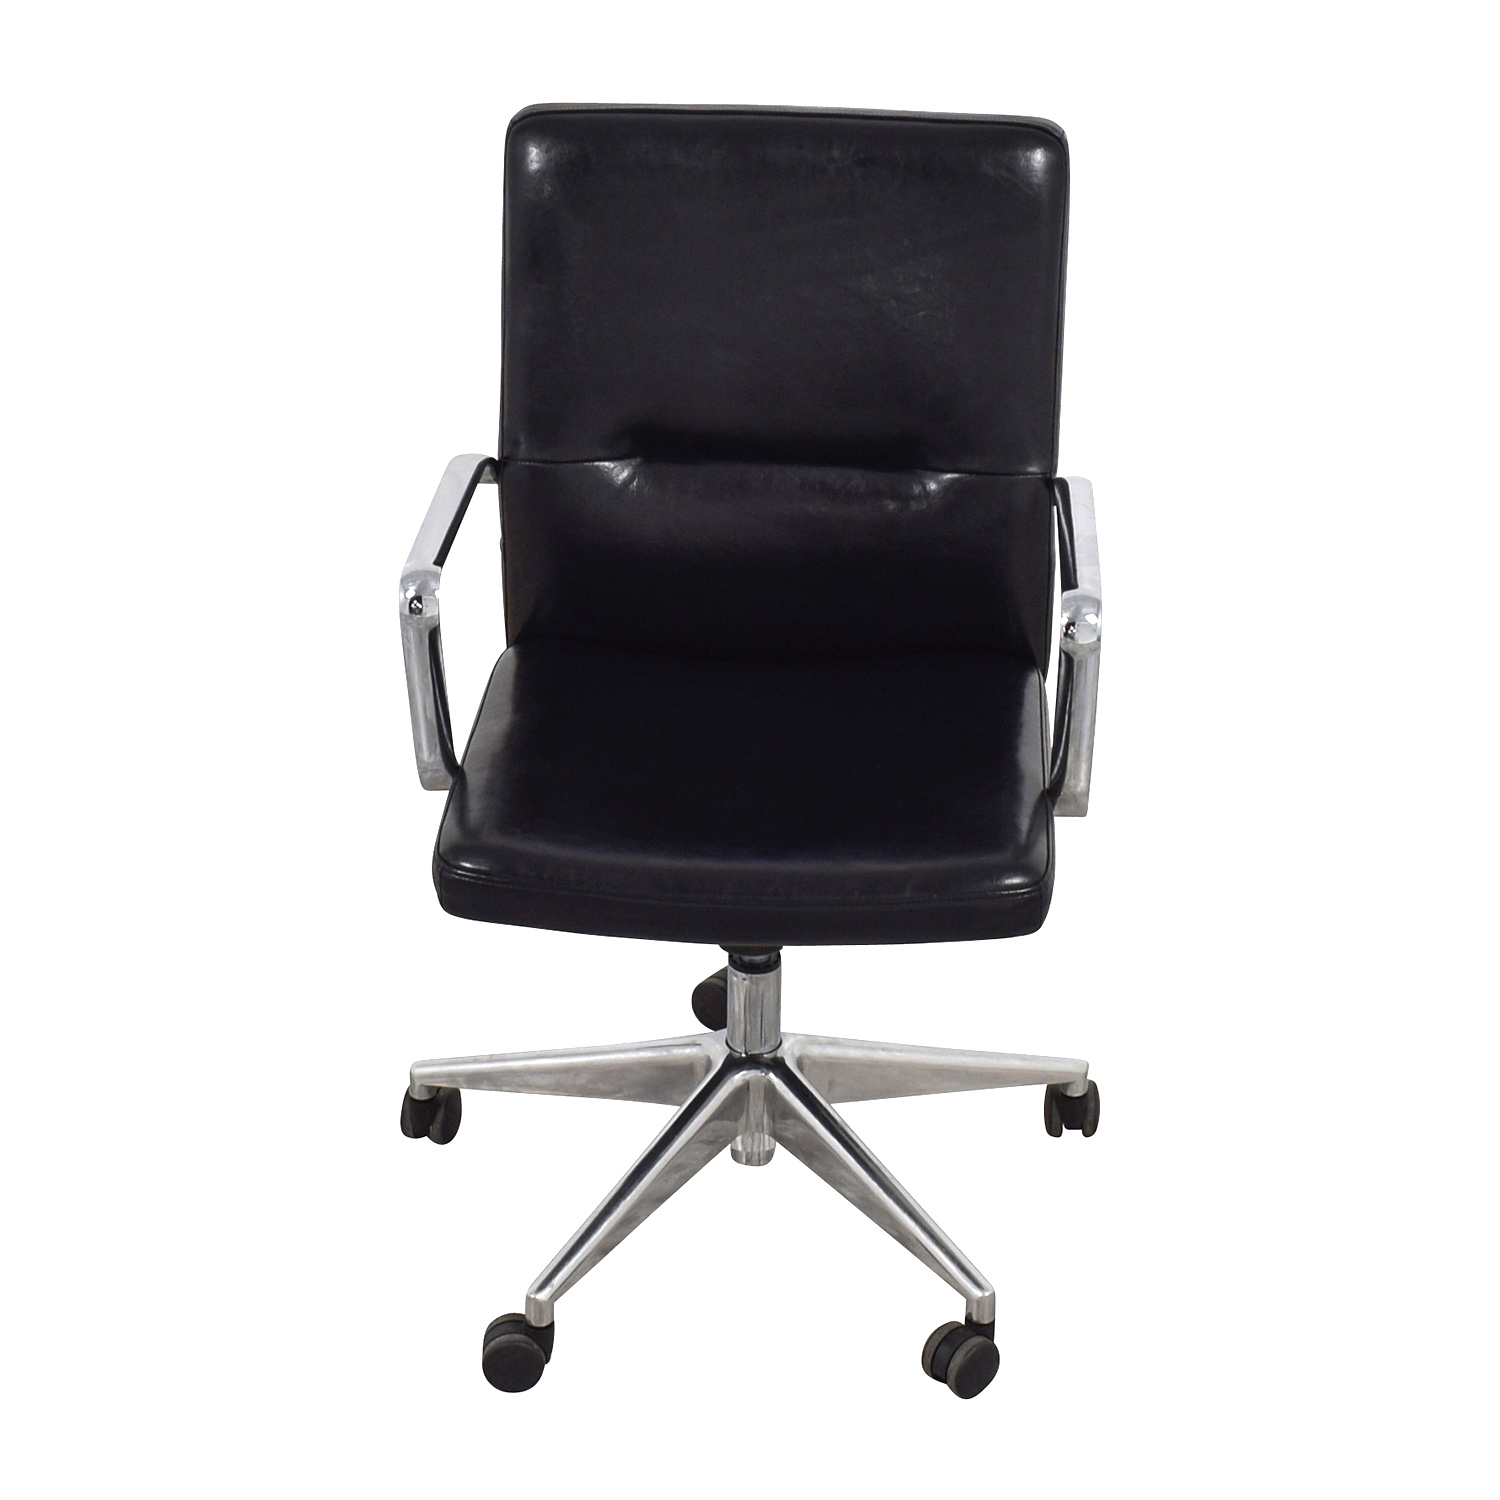 58 OFF  Sleek Black Office Chair with Chrome Armrest